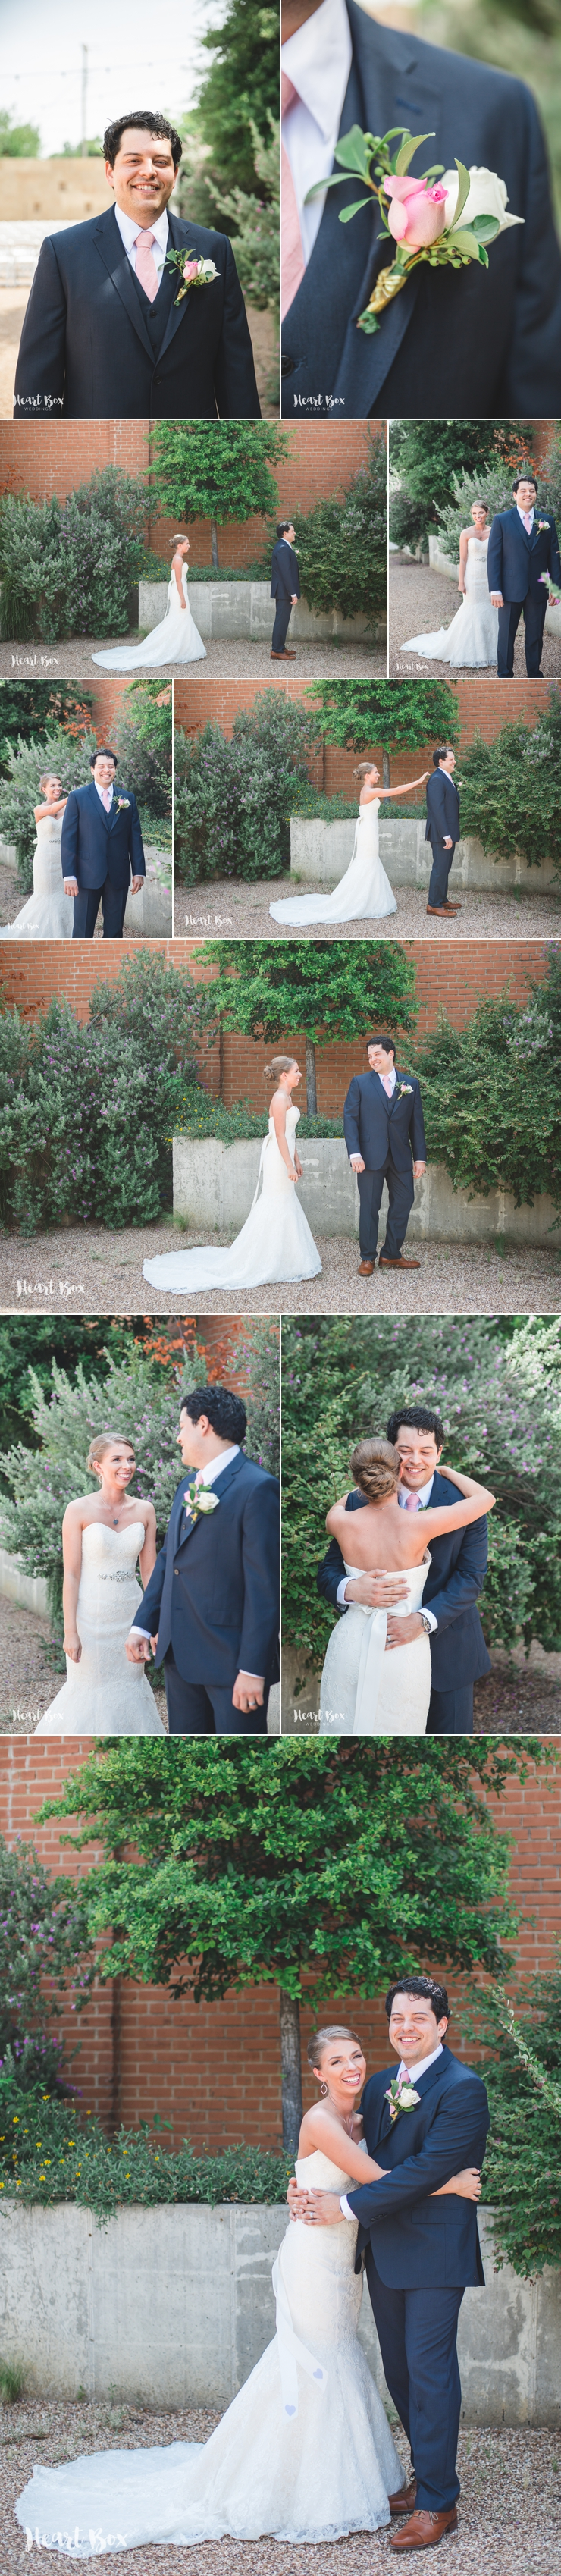 Towns Wedding Blog Collages 2.jpg